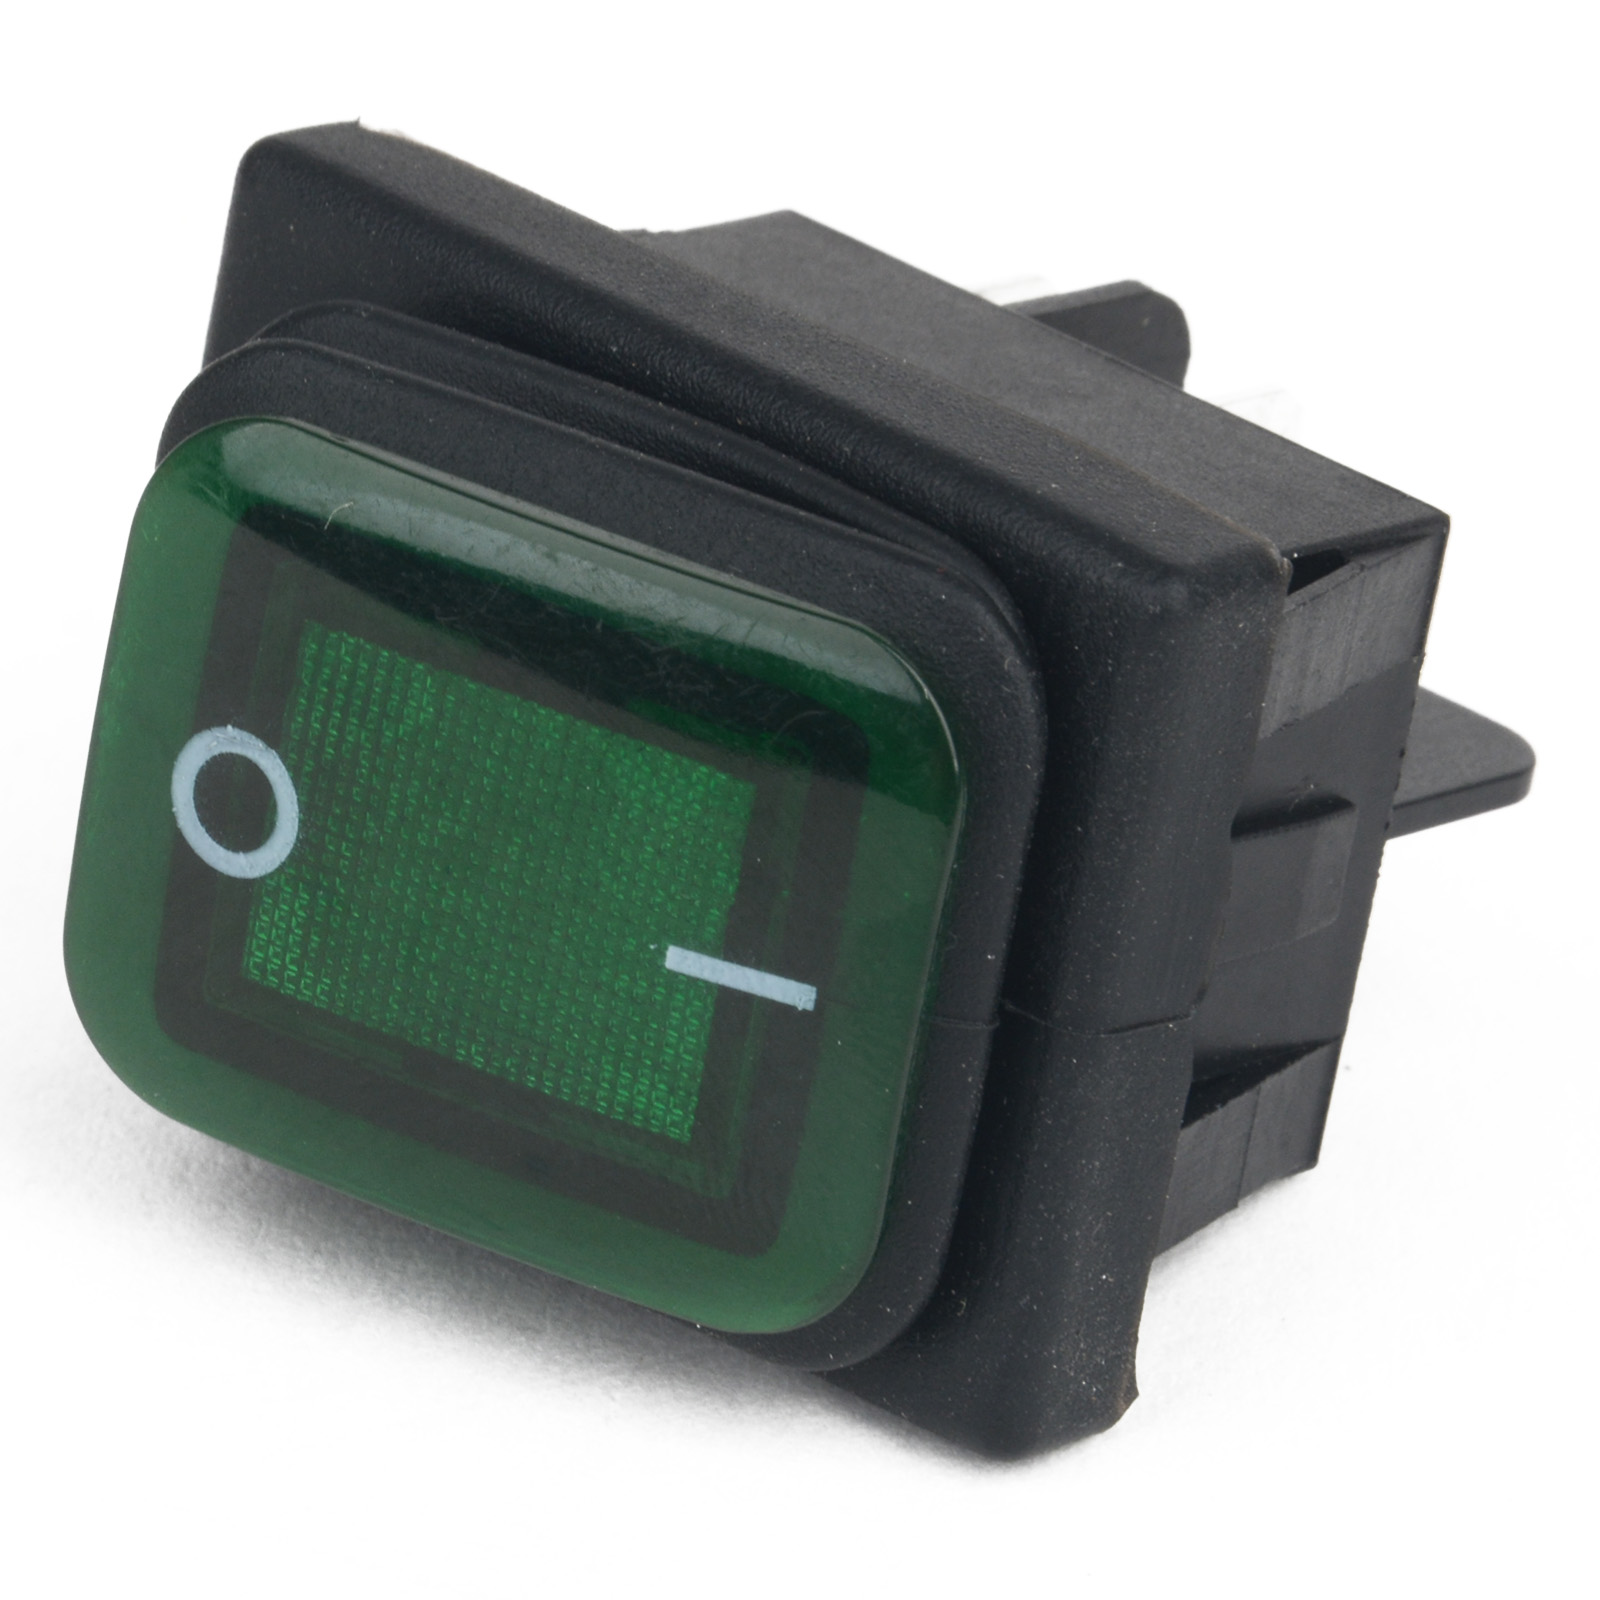 Mayitr New 4 Pin Rocker Toggle Switch Green LED 220V Car Boat ON/OFF SPST Waterproof 3 Position Plastic Metal Switches Wholesale